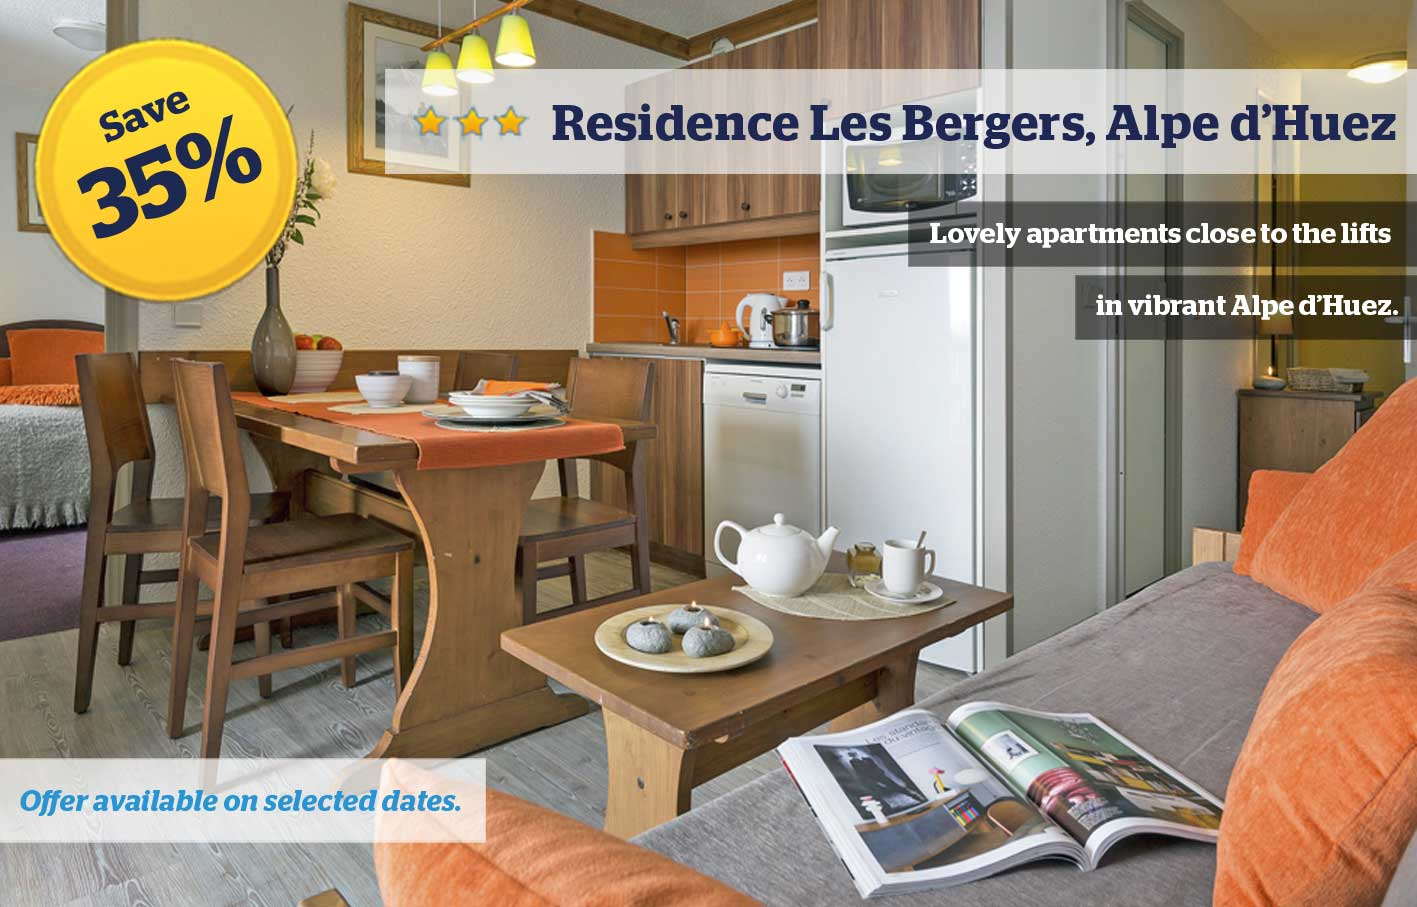 Les Bergers Offer